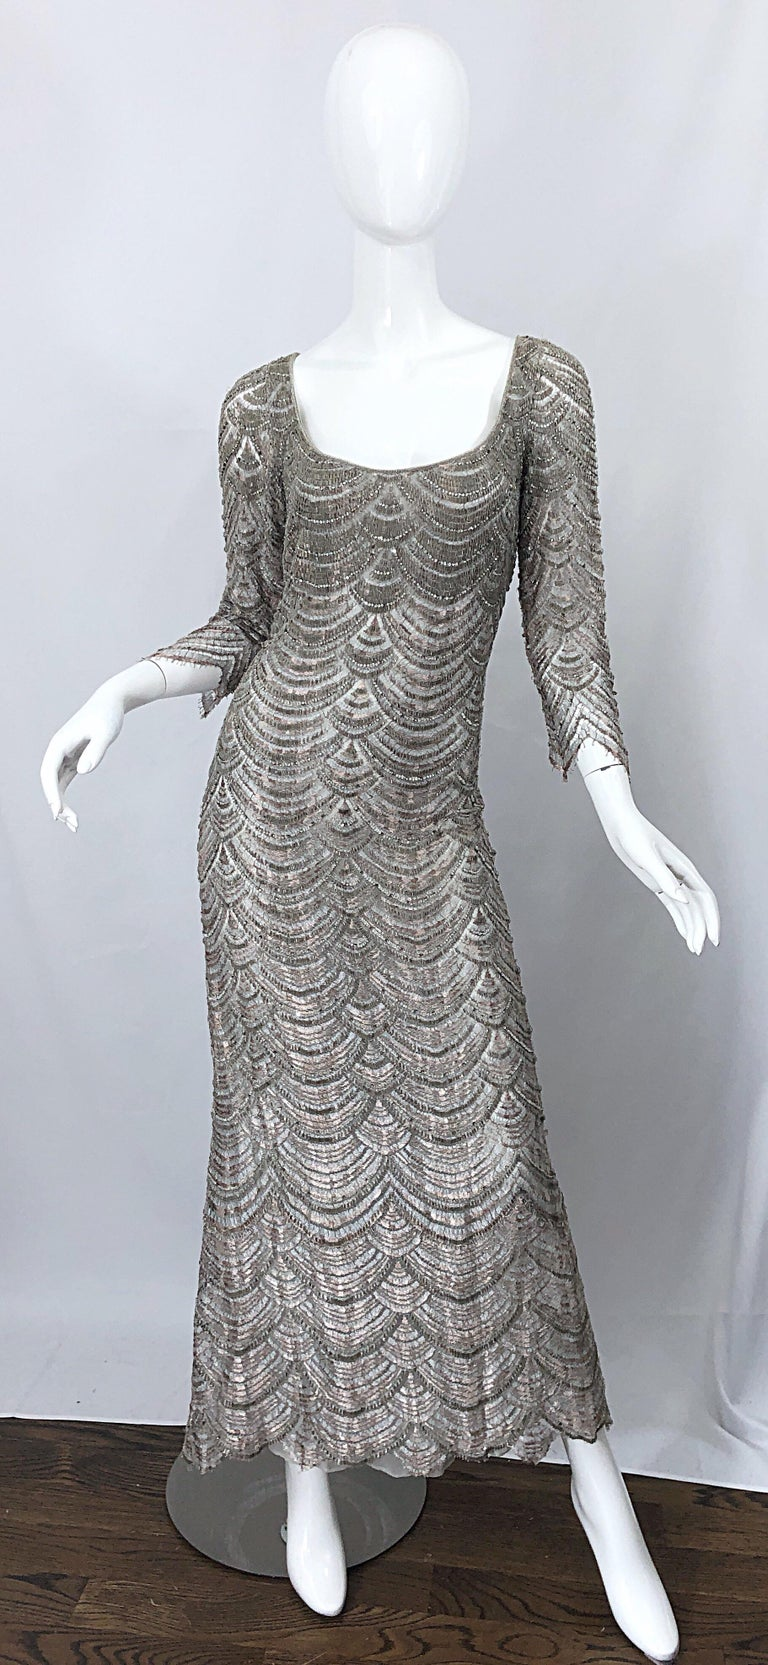 Beautiful vintage 1990s BADGLEY MISCHKA size 12 gray fully beaded + rhinestone deco style evening gown! Features elegant 3/4 sleeves with a fitted bodice and forgiving skirt. Hand crochet embroidery detail thorughout with thousands of  hand-sewn